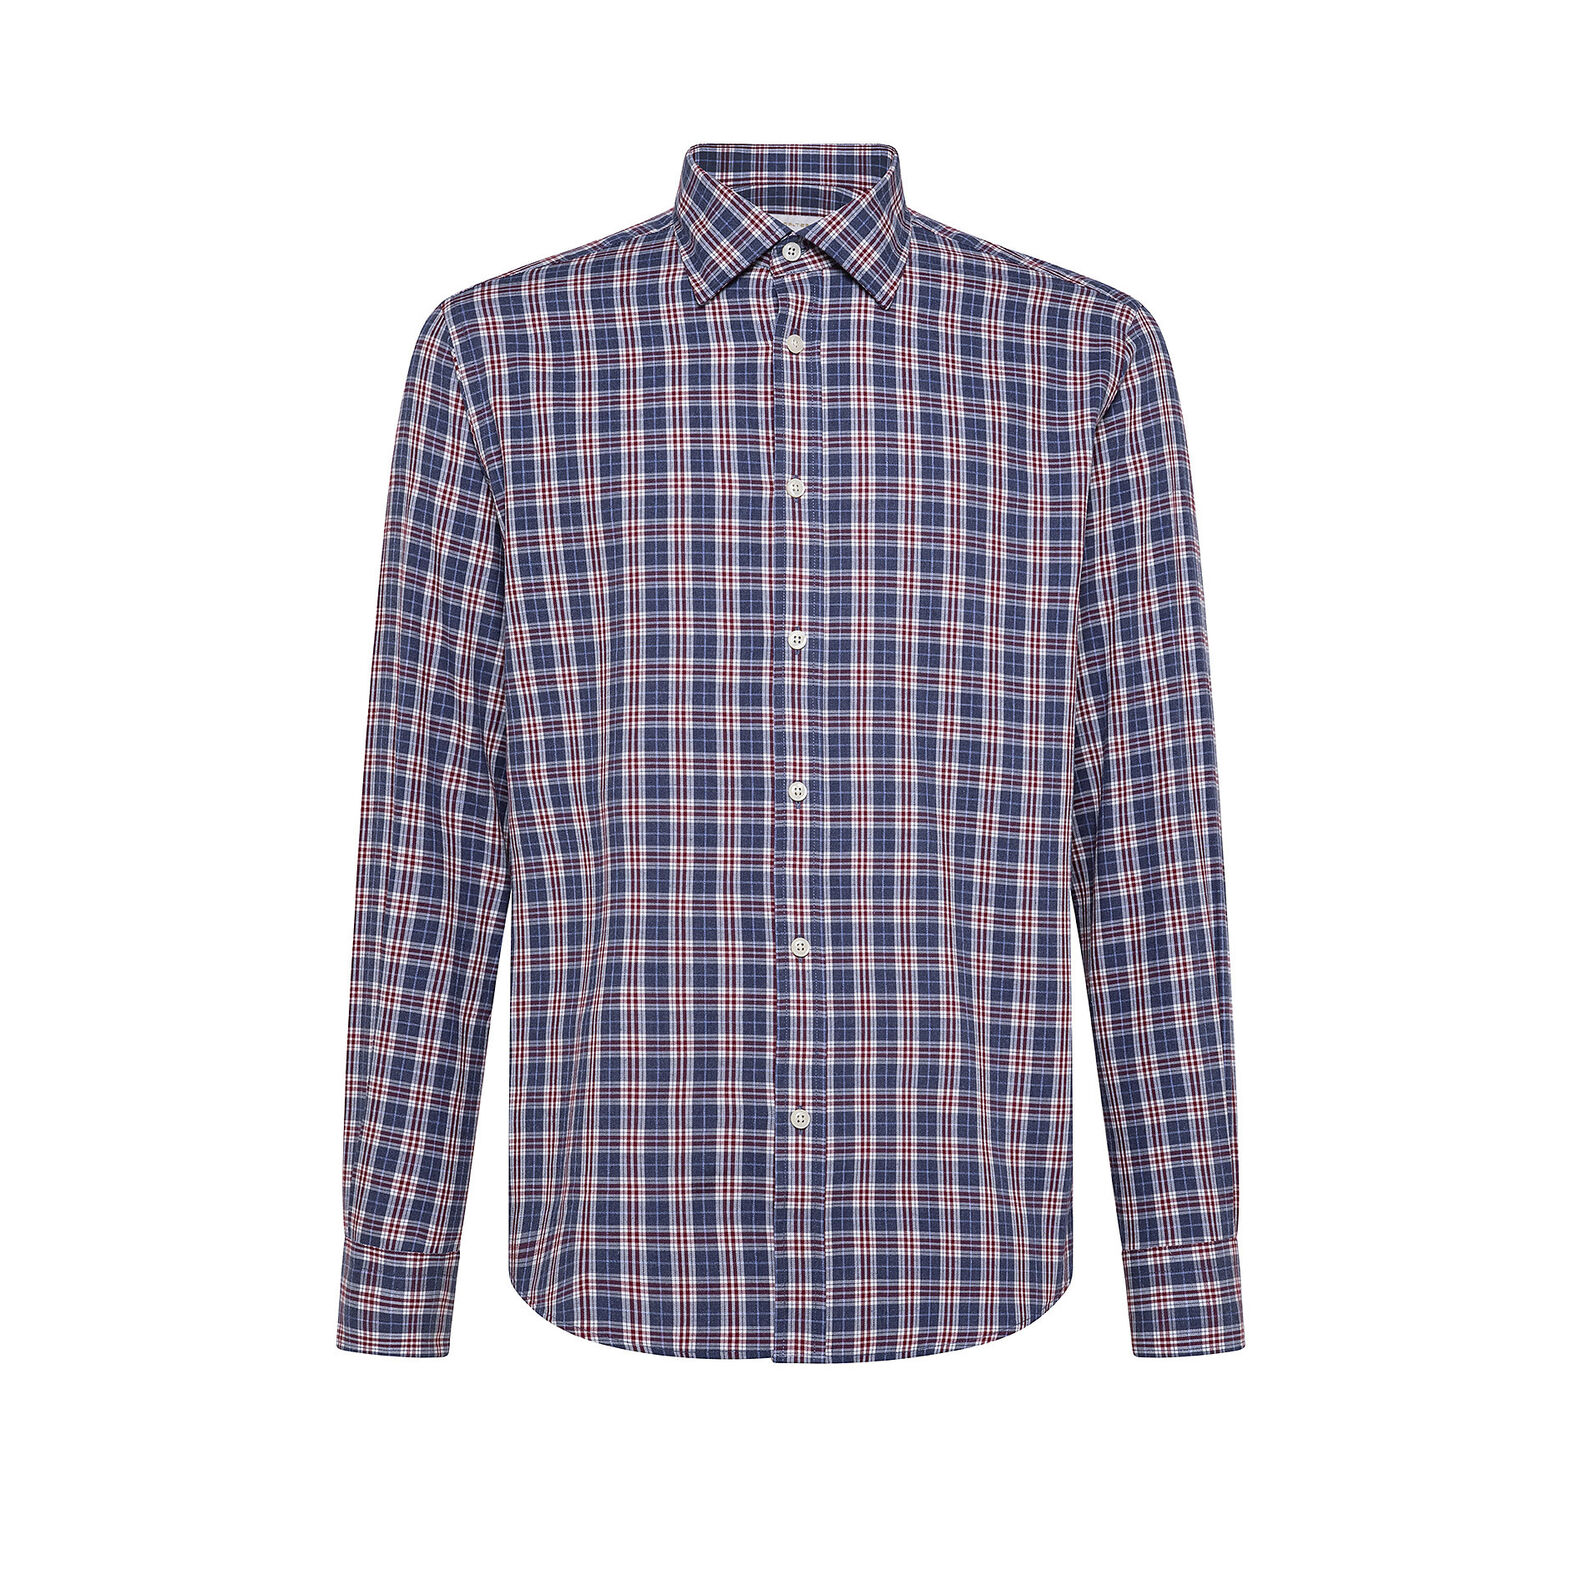 Tailored-fit button-down shirt in organic cotton